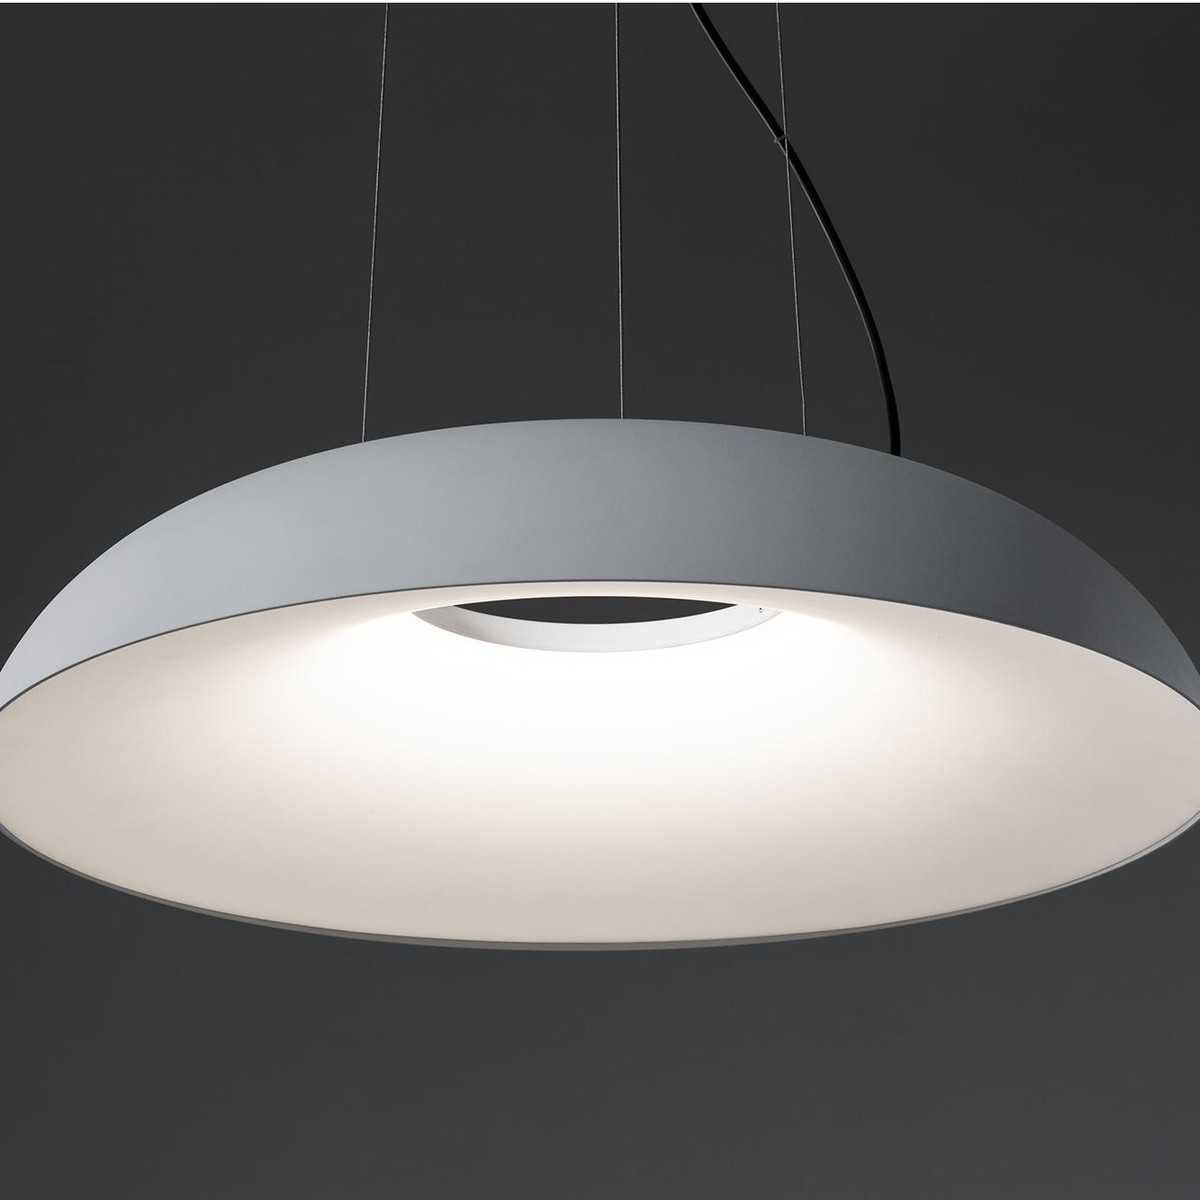 Maggiolone led suspension lamp martinelli luce for Suspension 4 lampes